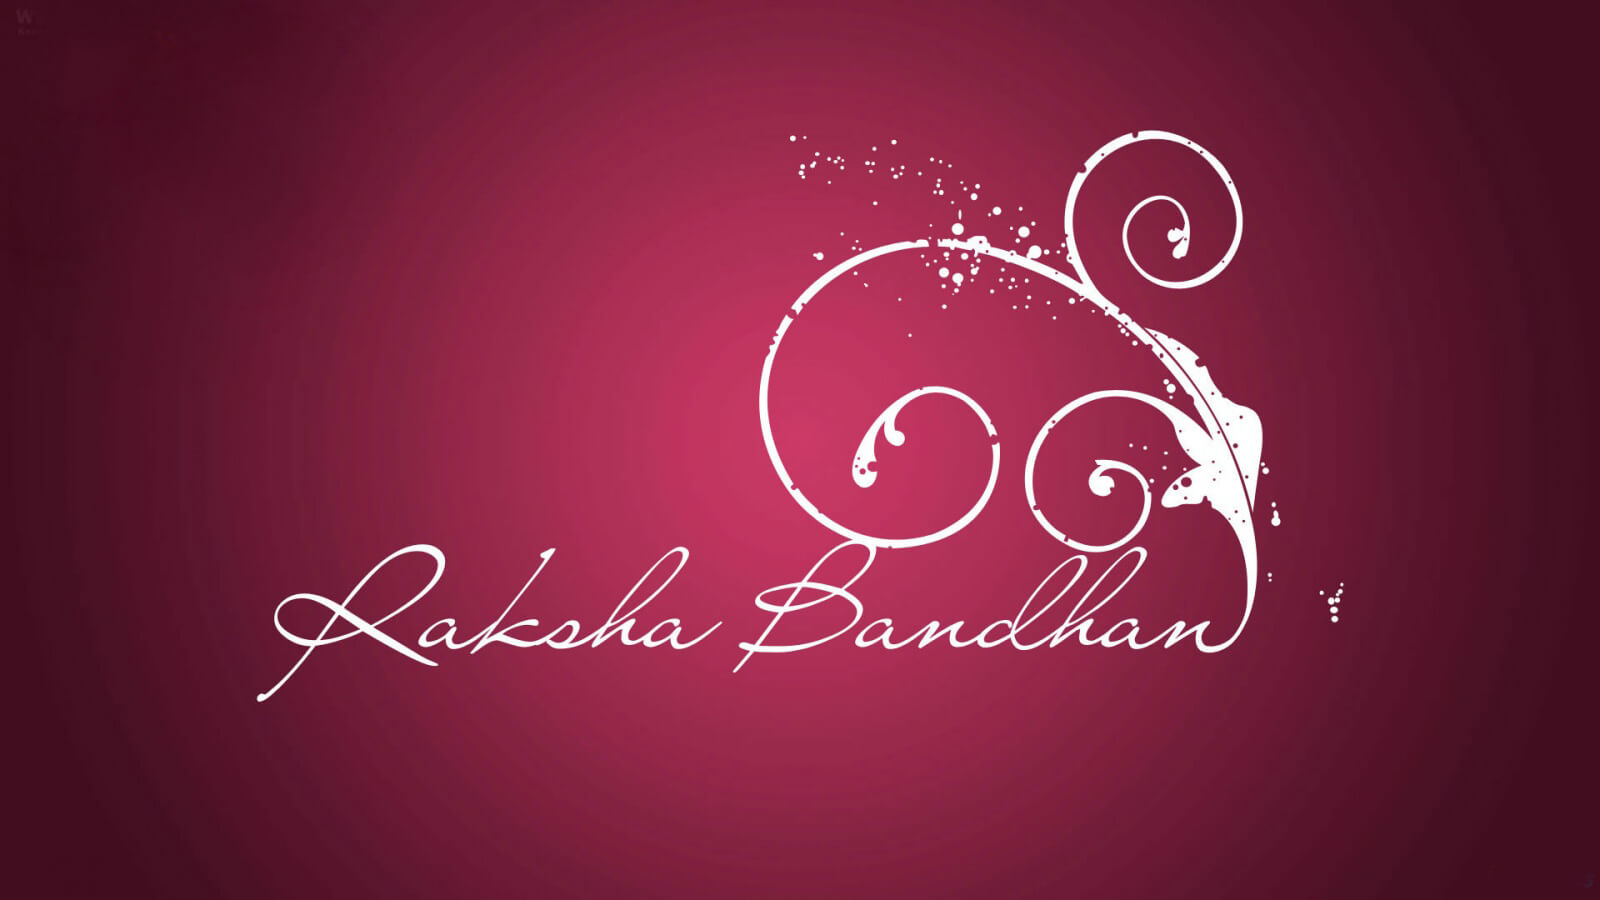 Raksha Bandhan Wallpapers Free Download